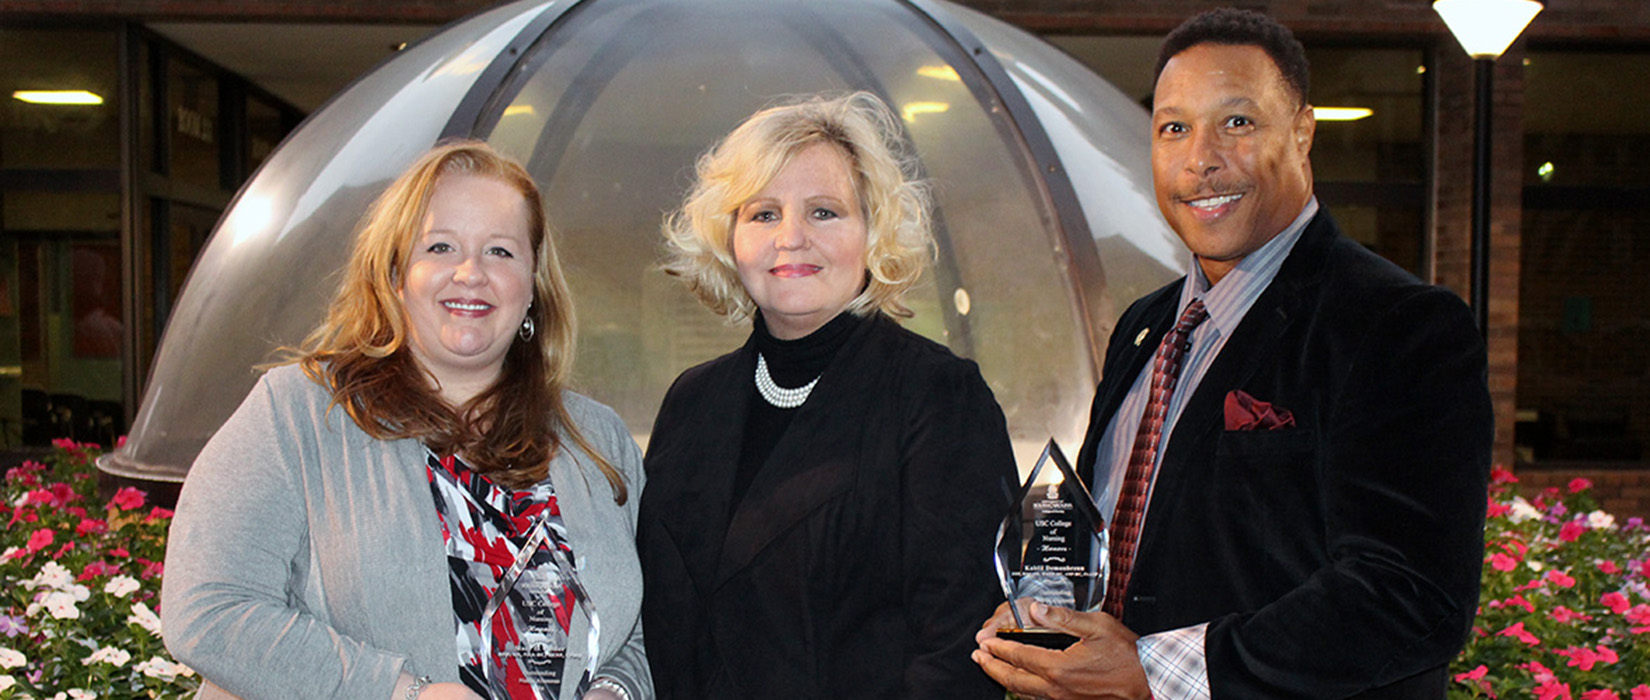 2016 Alumni Award Recipients Stacy Collier and Kahlil Demonbreun with Dean Jeannette Andrews.